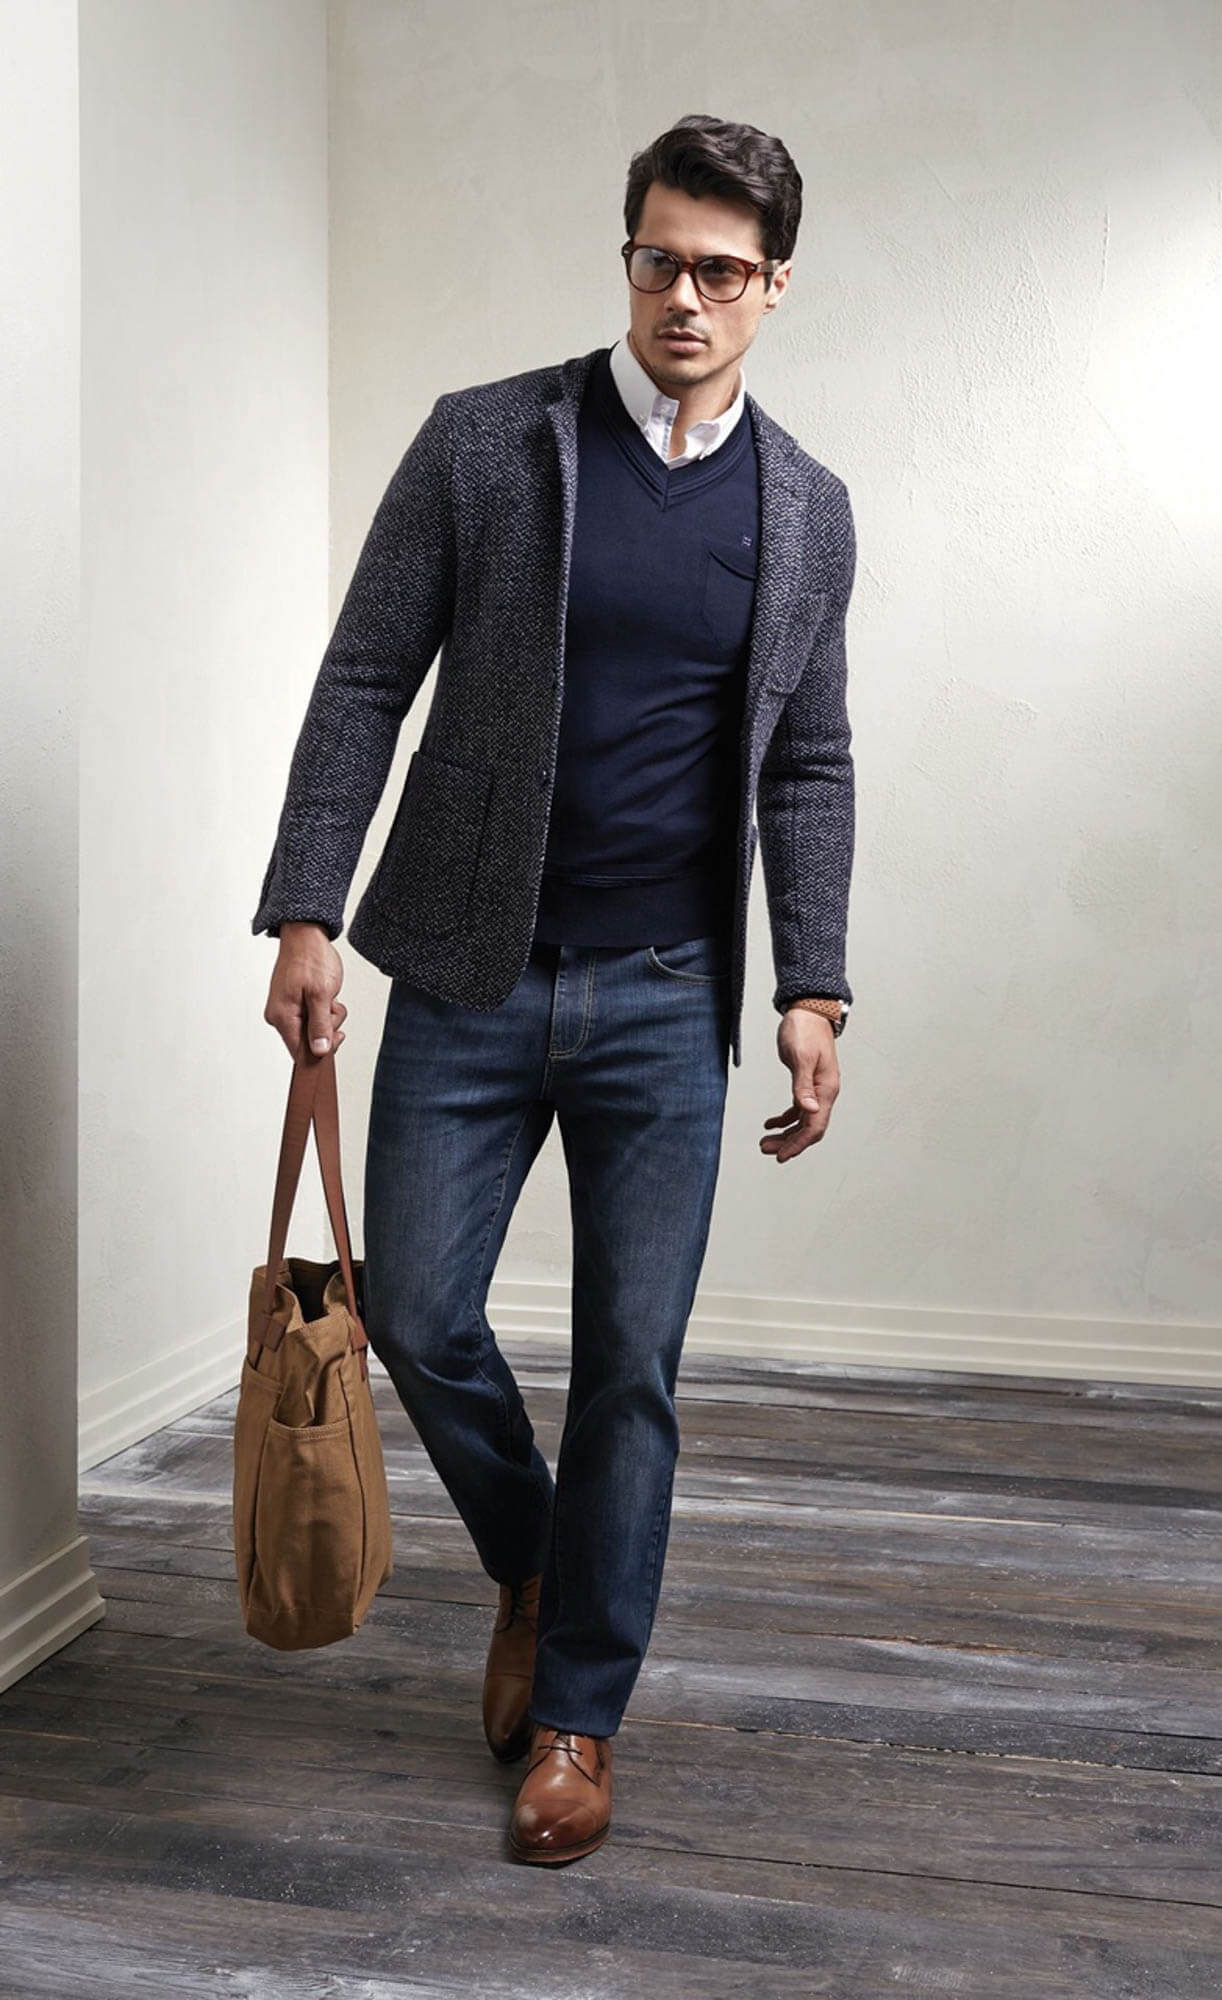 Business Casual Fashion for Men this is too casual for business casual unless you work in a young tech IVBHDUN